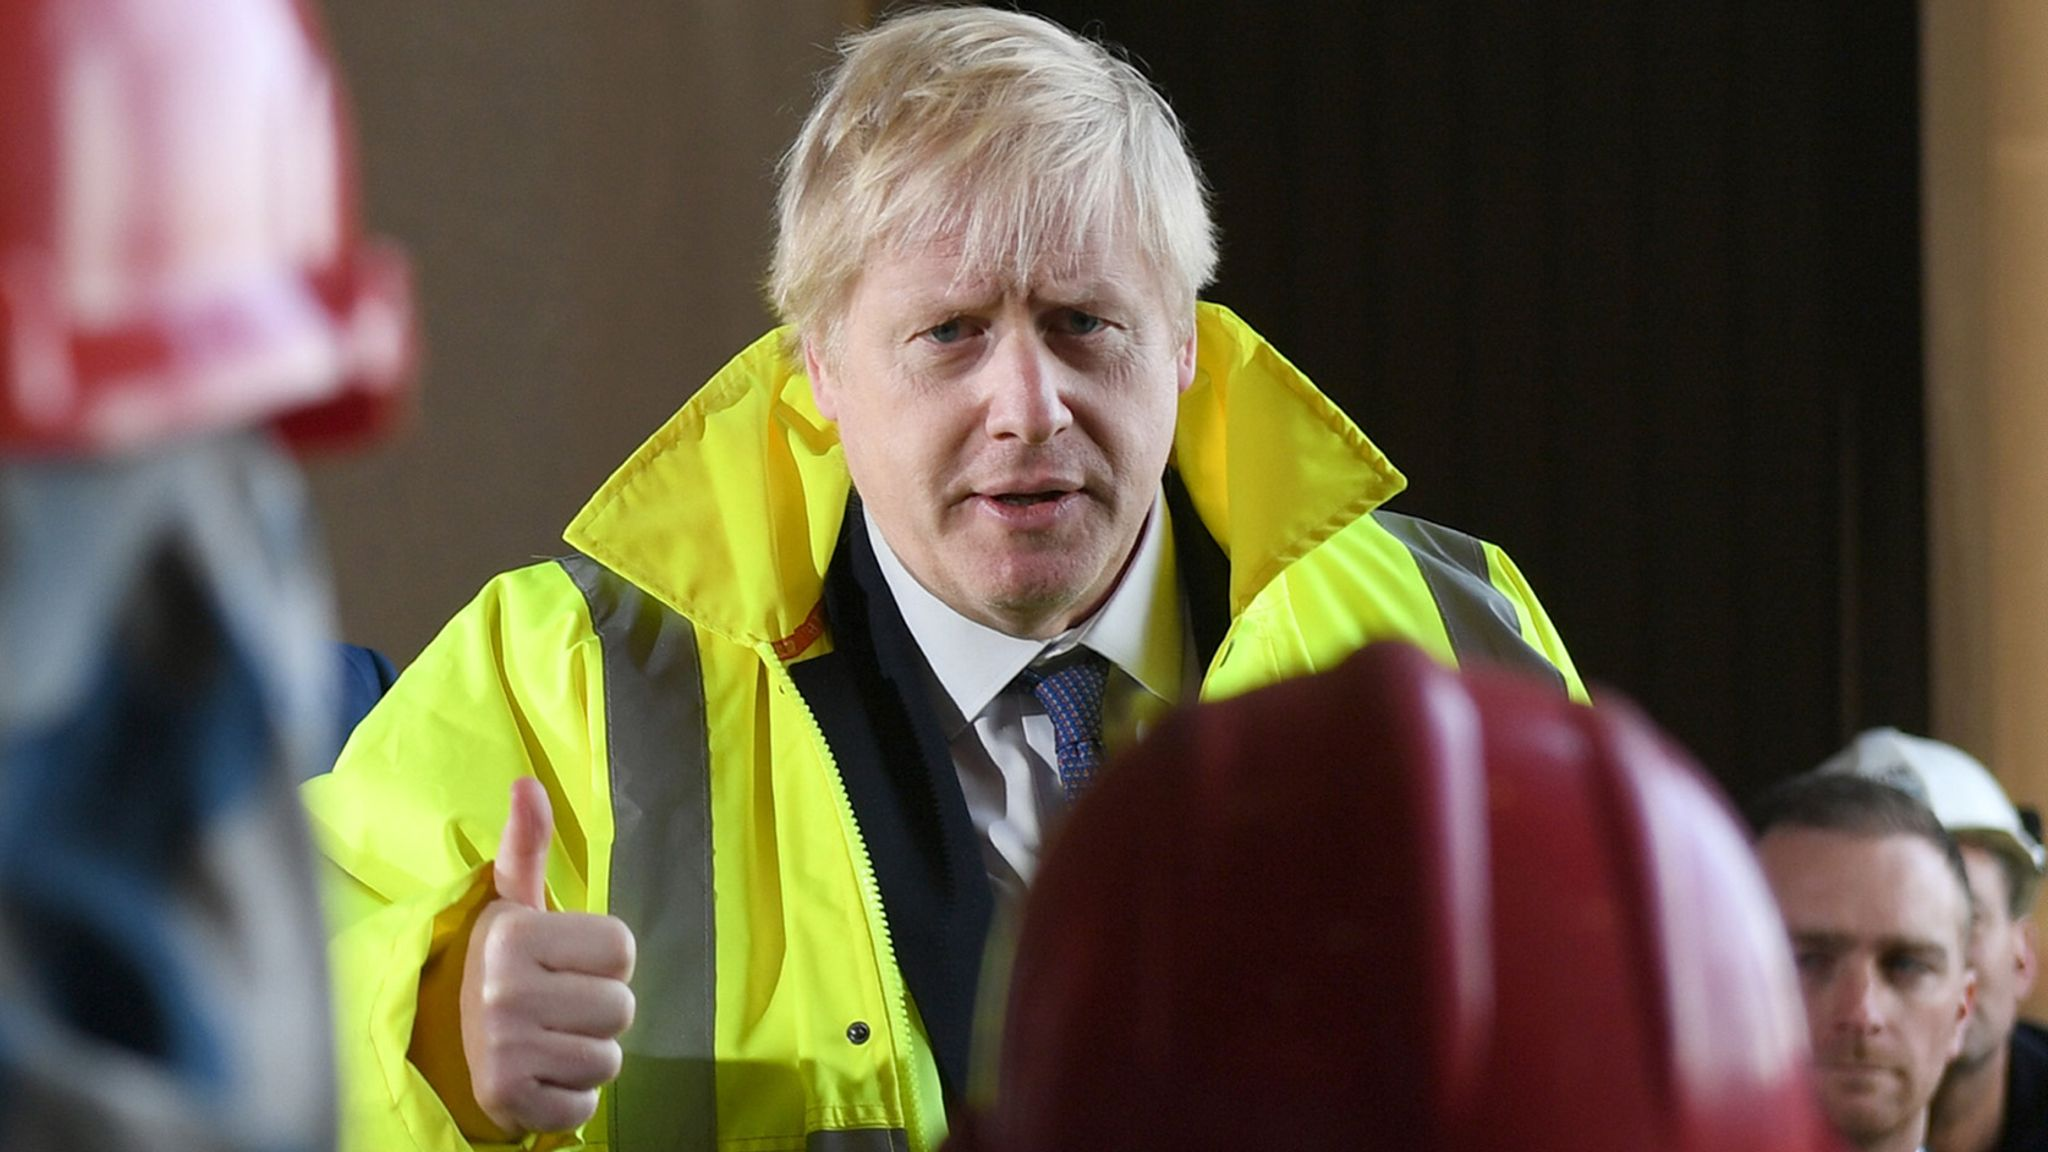 General election: Boris Johnson reveals tax cut plan ahead of Tory manifesto release